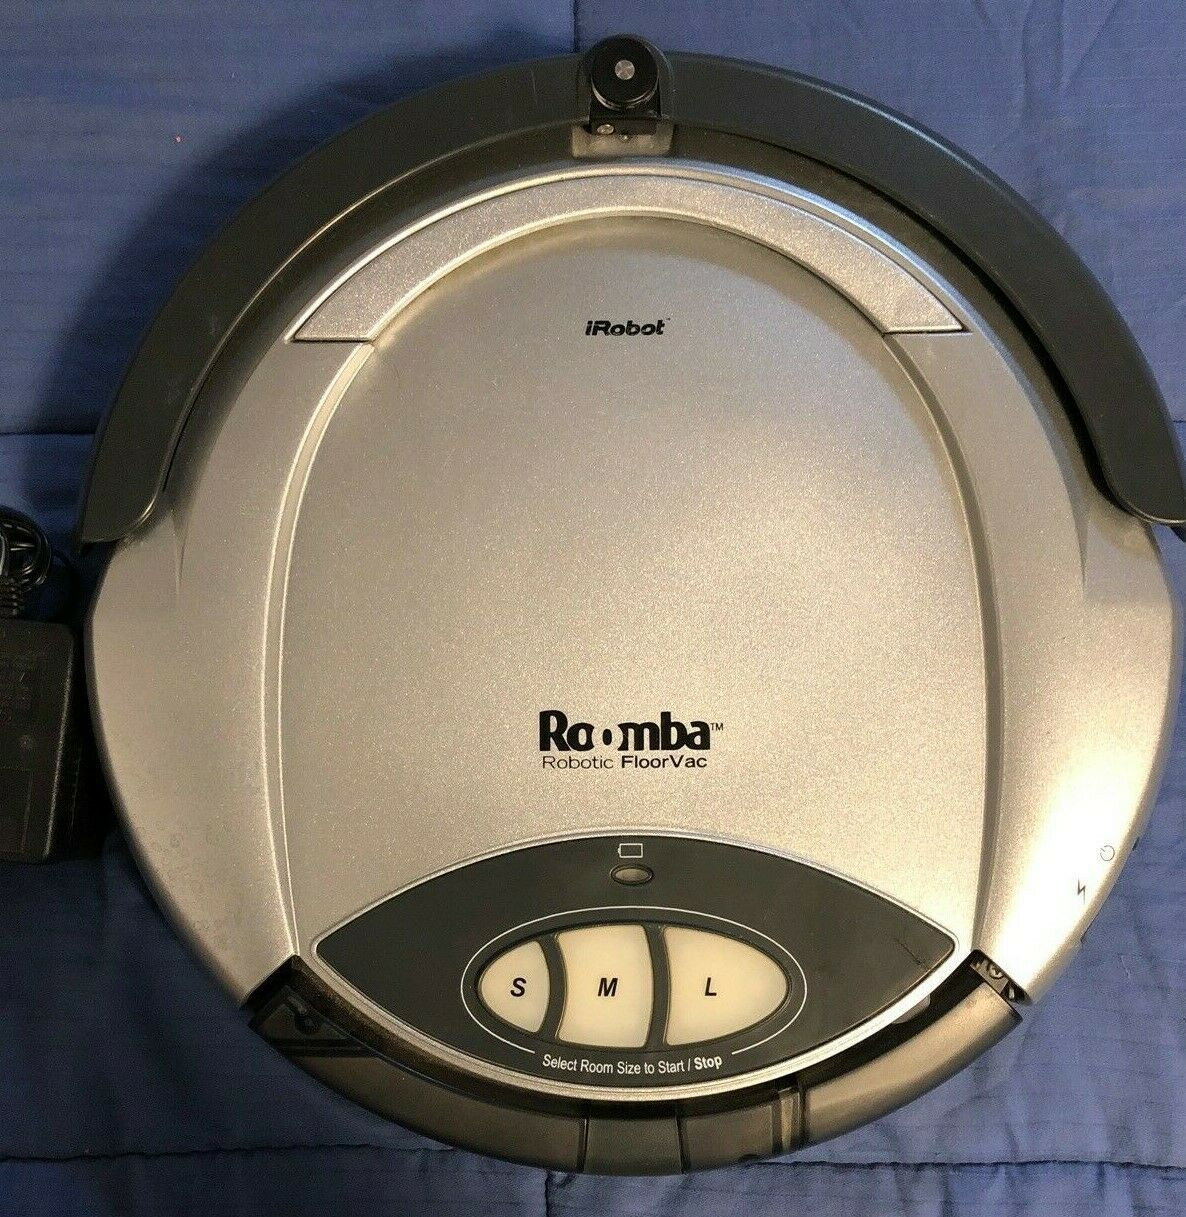 Primary image for irobot Roomba - Robot Floor Vacuum - Parts